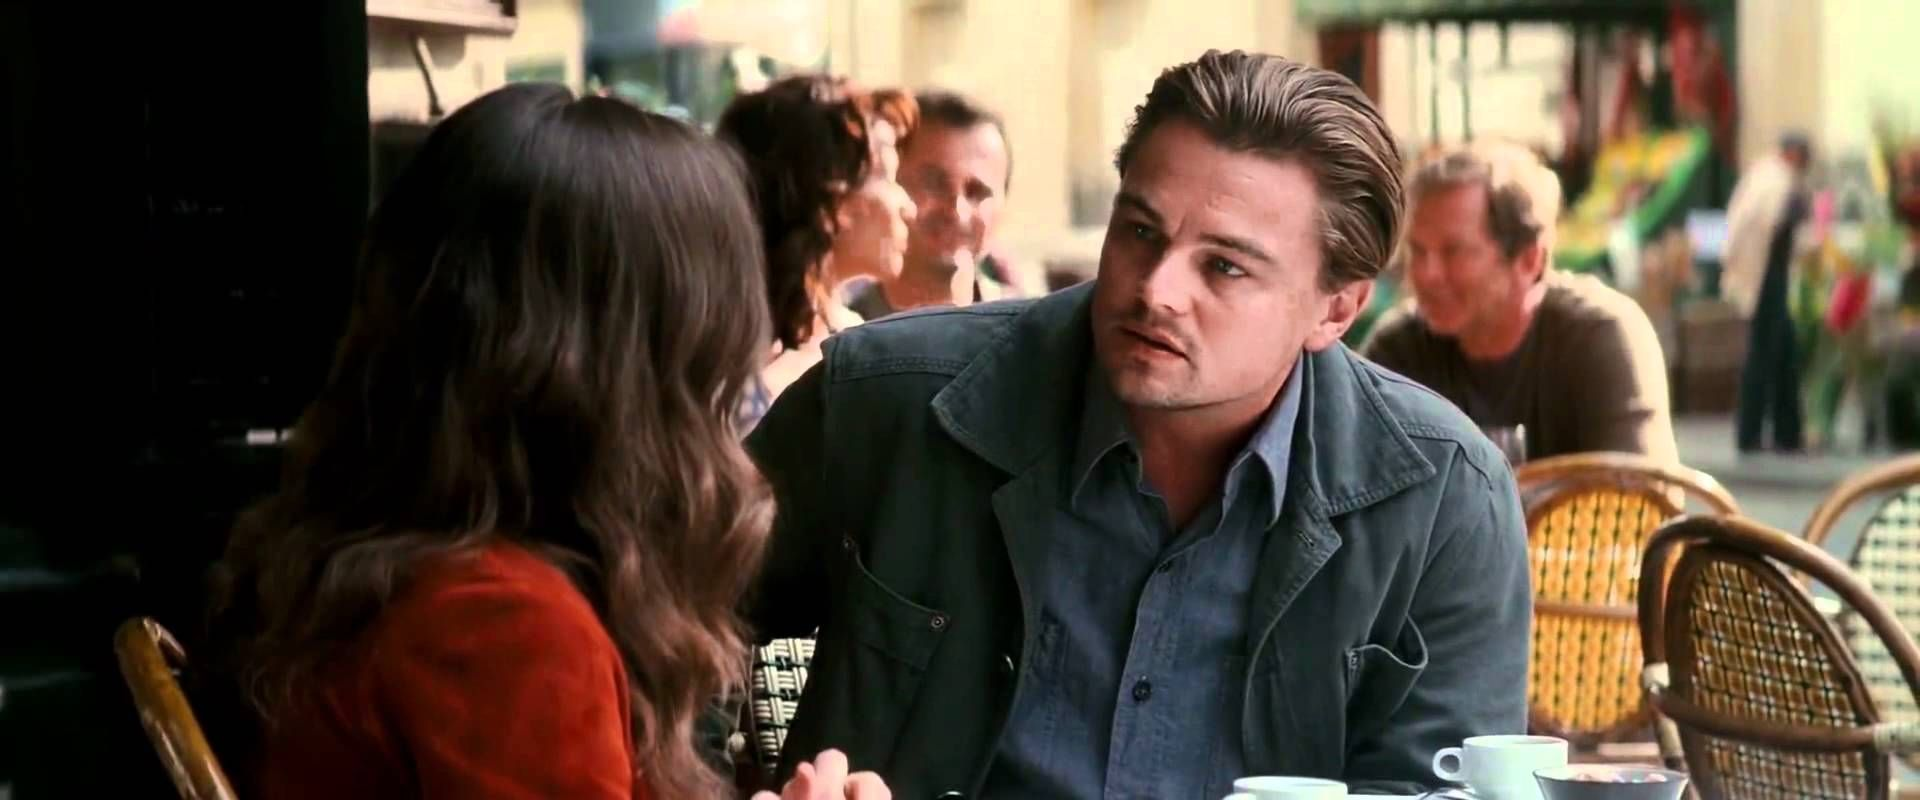 You could argue all of Inception is a #SUBmoment but this cafe scene is particularly good | Inception, Leonardo dicaprio, Scene